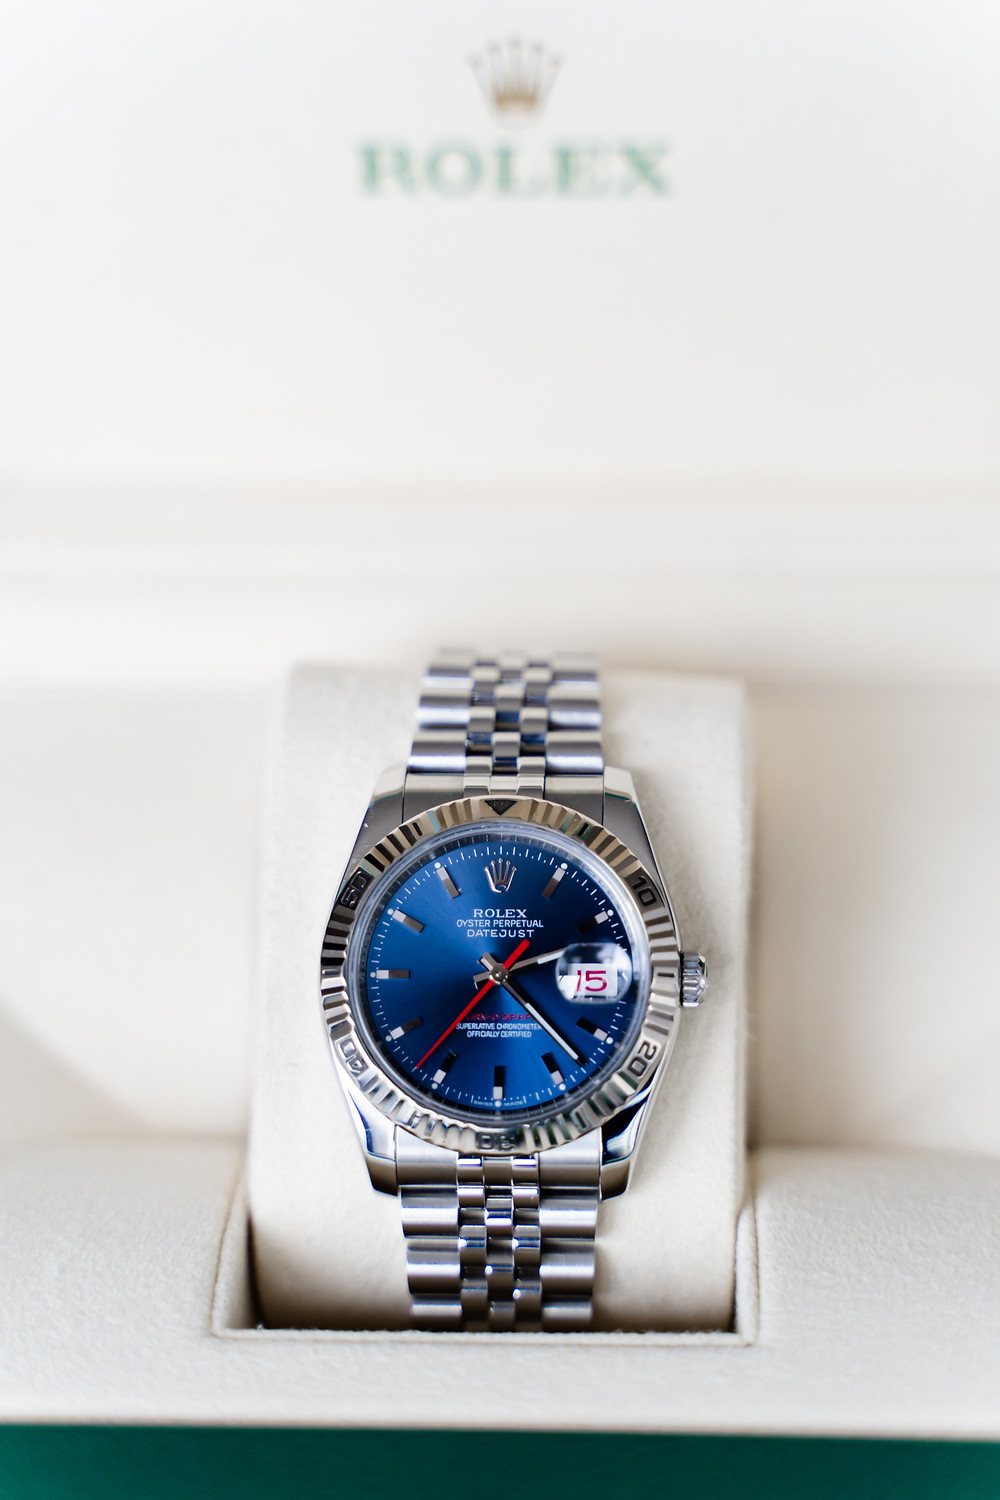 Rolex Turn O Graph 116264 with a blue dial and jubilee bracelet